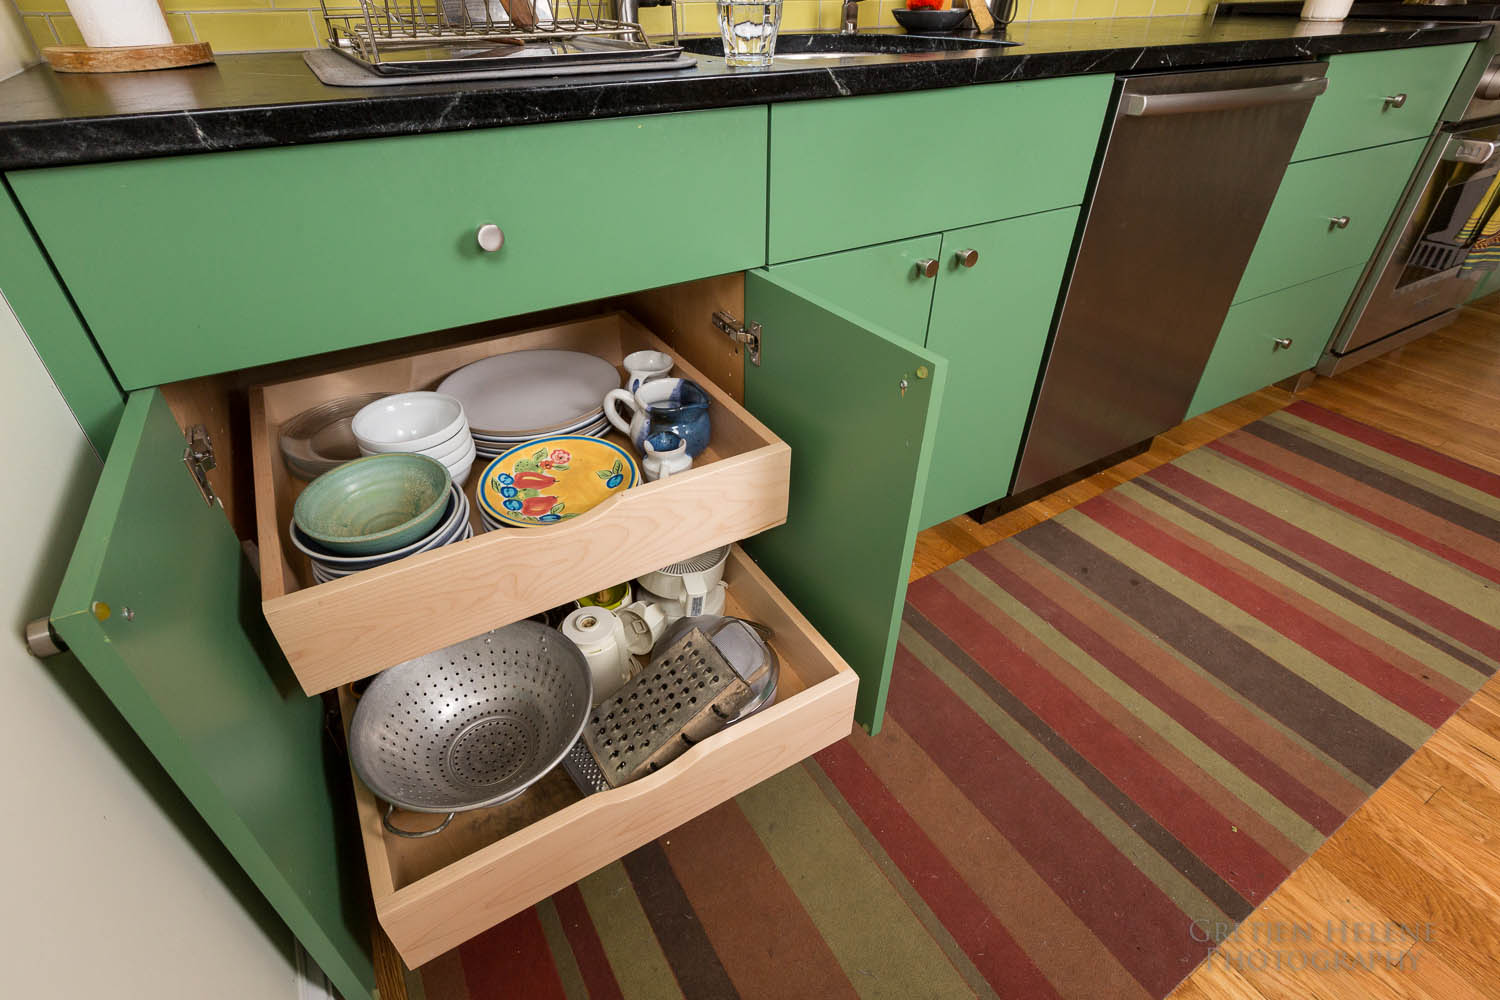 Base cabinet pullouts make access easy